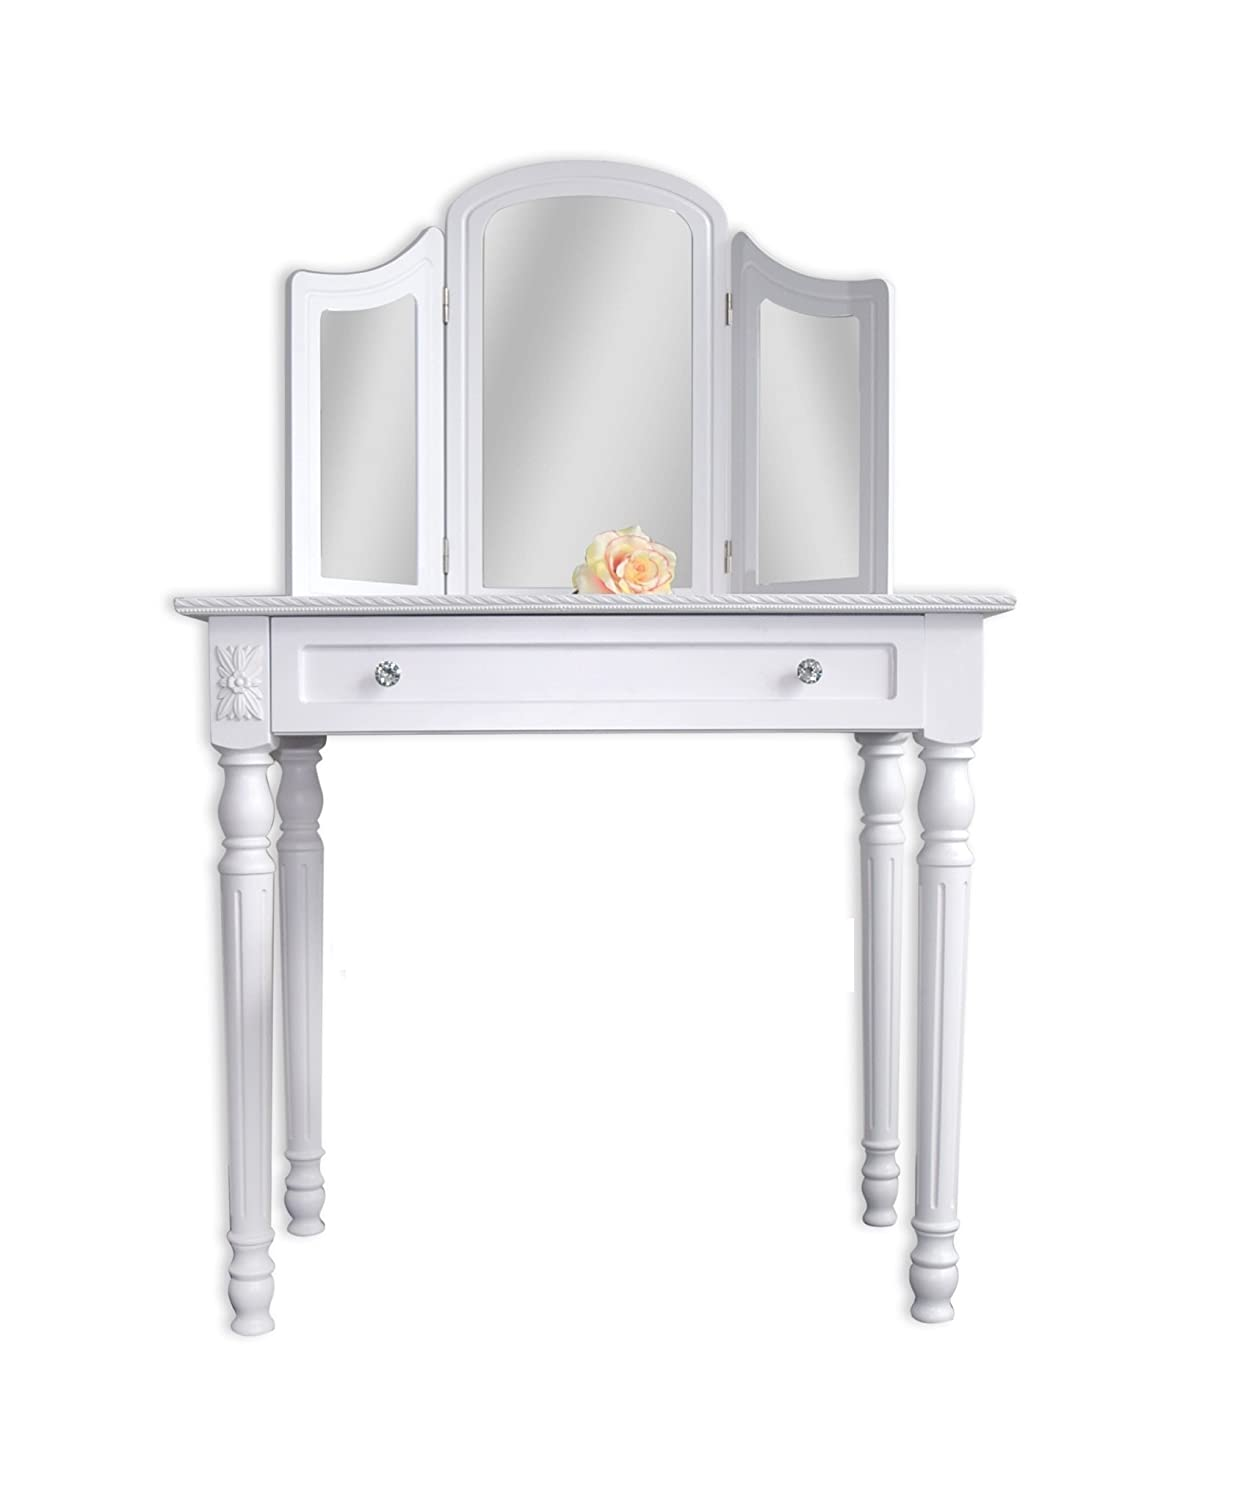 Superb img of Rebecca Srl Vanity Dressing Table 3 Mirror White Wood French Style  with #A26E29 color and 1249x1500 pixels